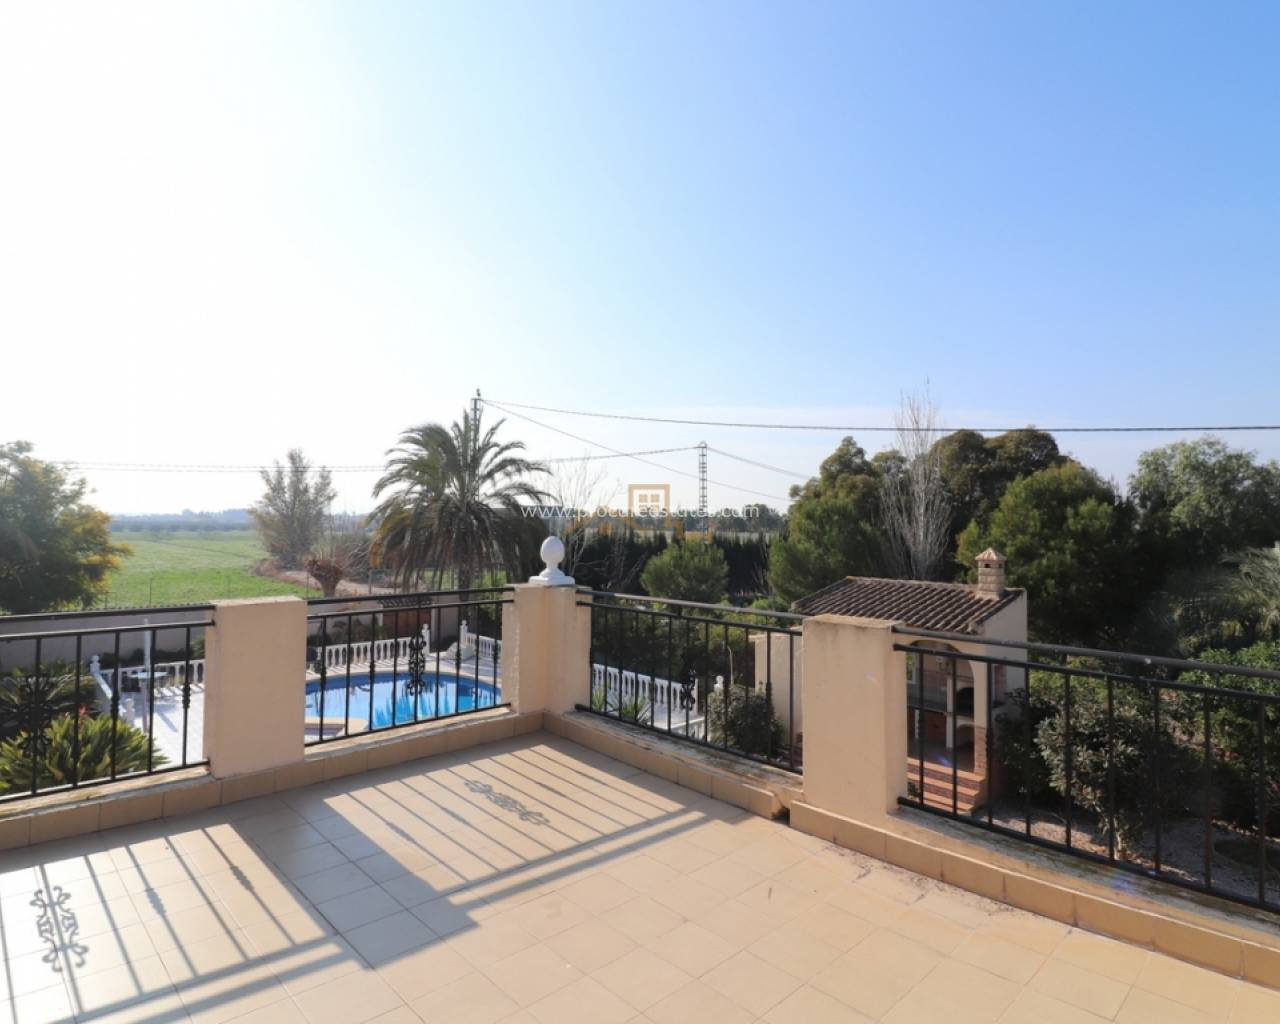 Reventa - Country Property - Catral - Costa Blanca